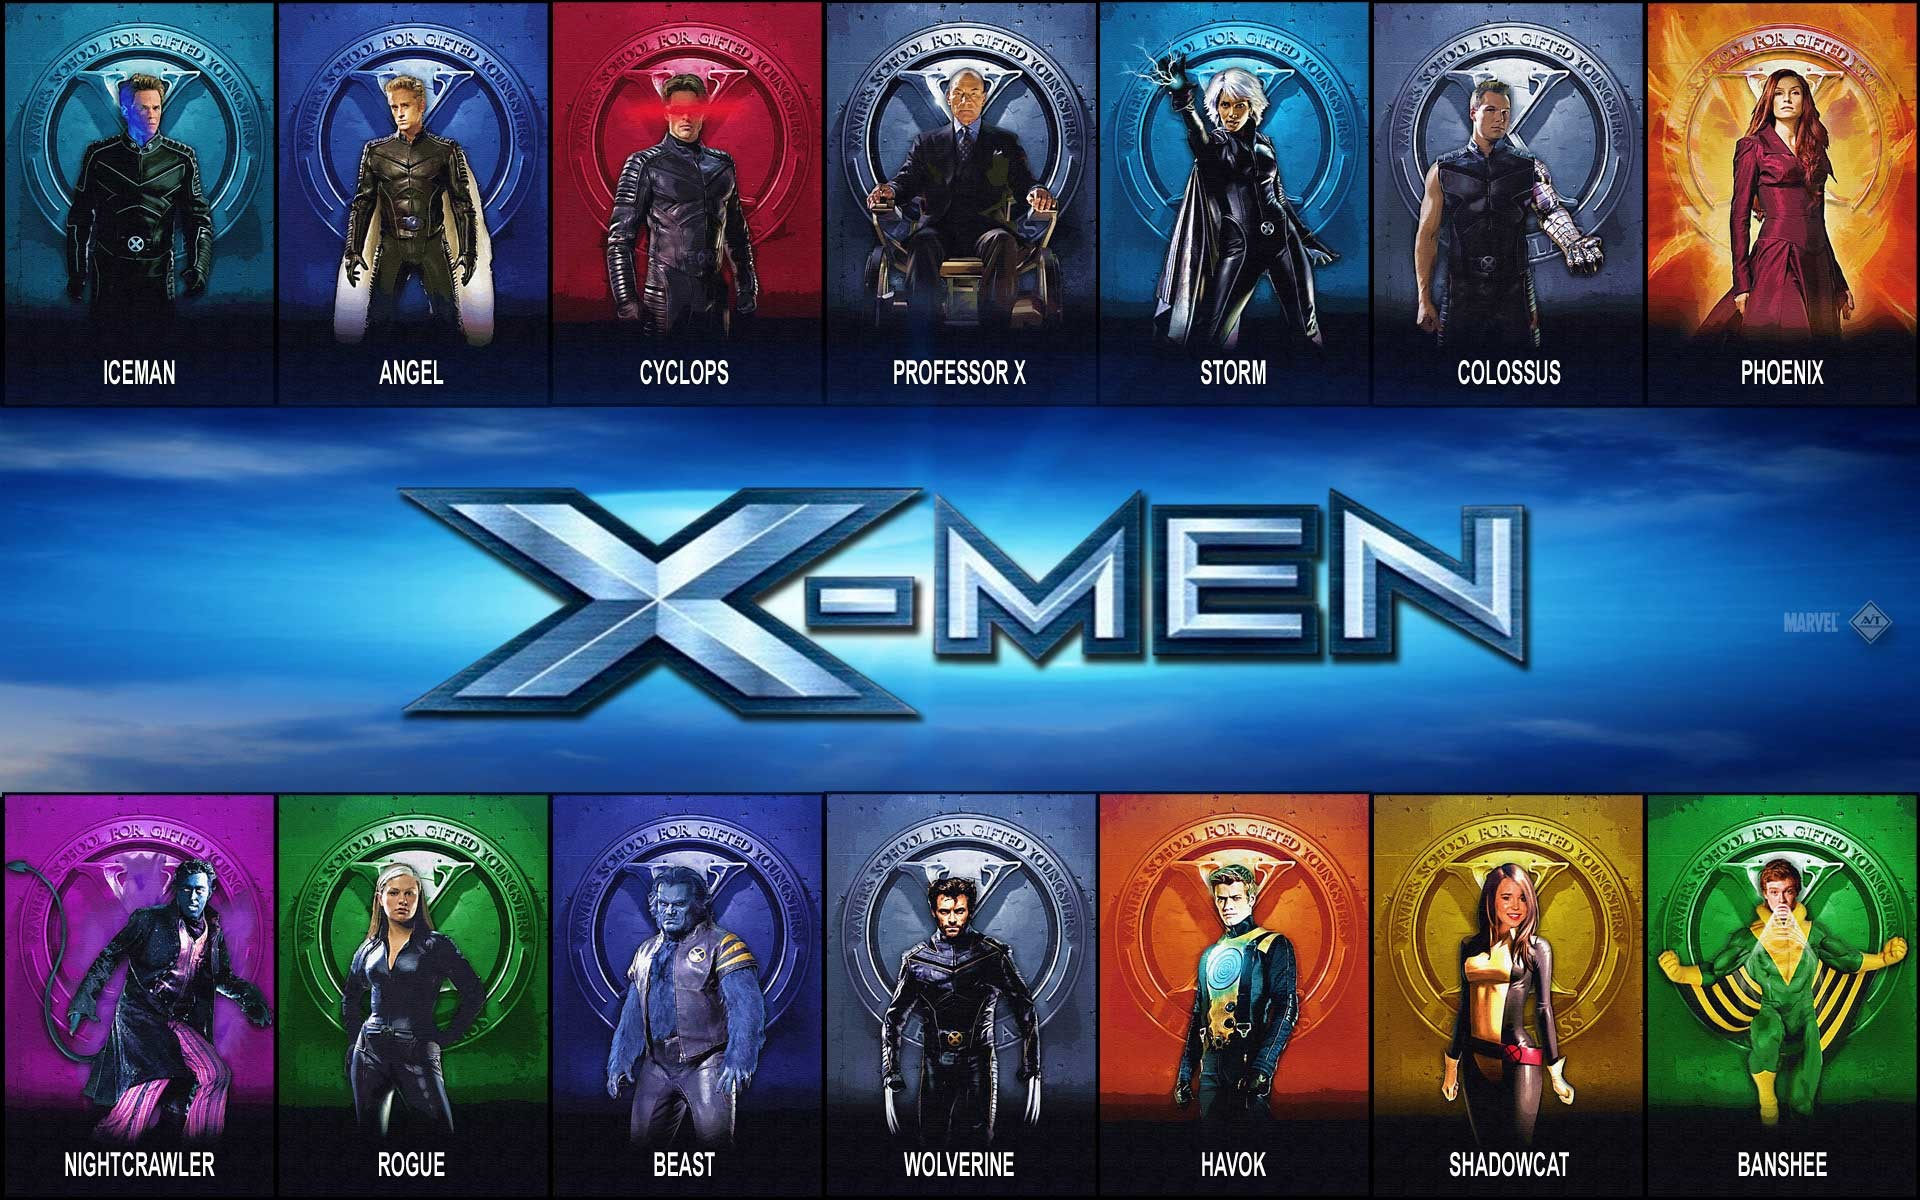 X Men Pictures for Wallpaper (71+ images)